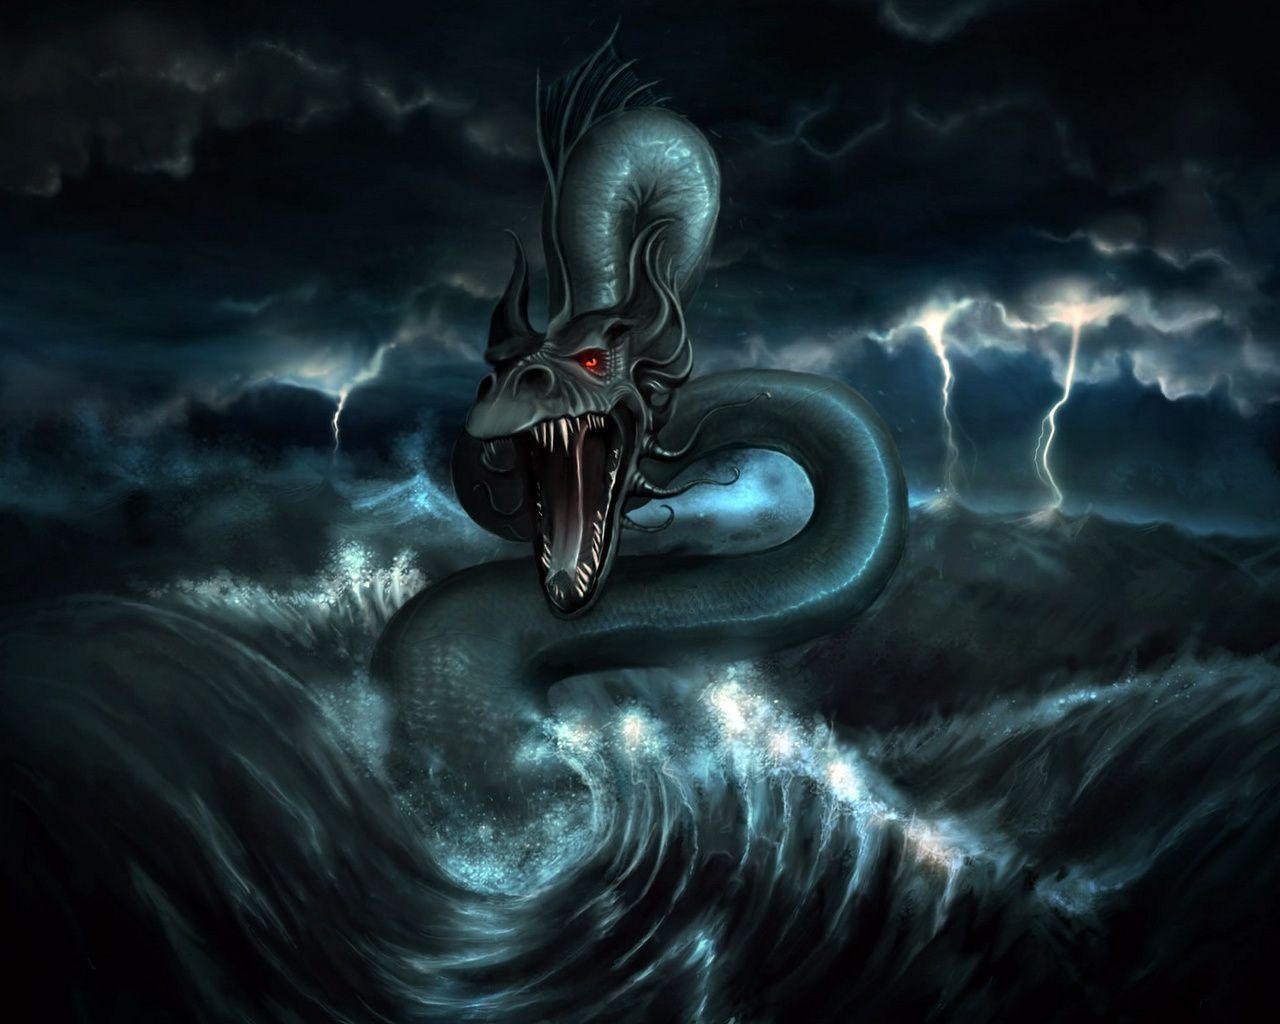 Sea snake dragon wallpaper from dragons wallpapers dragons sea snake dragon wallpaper from dragons wallpapers voltagebd Image collections